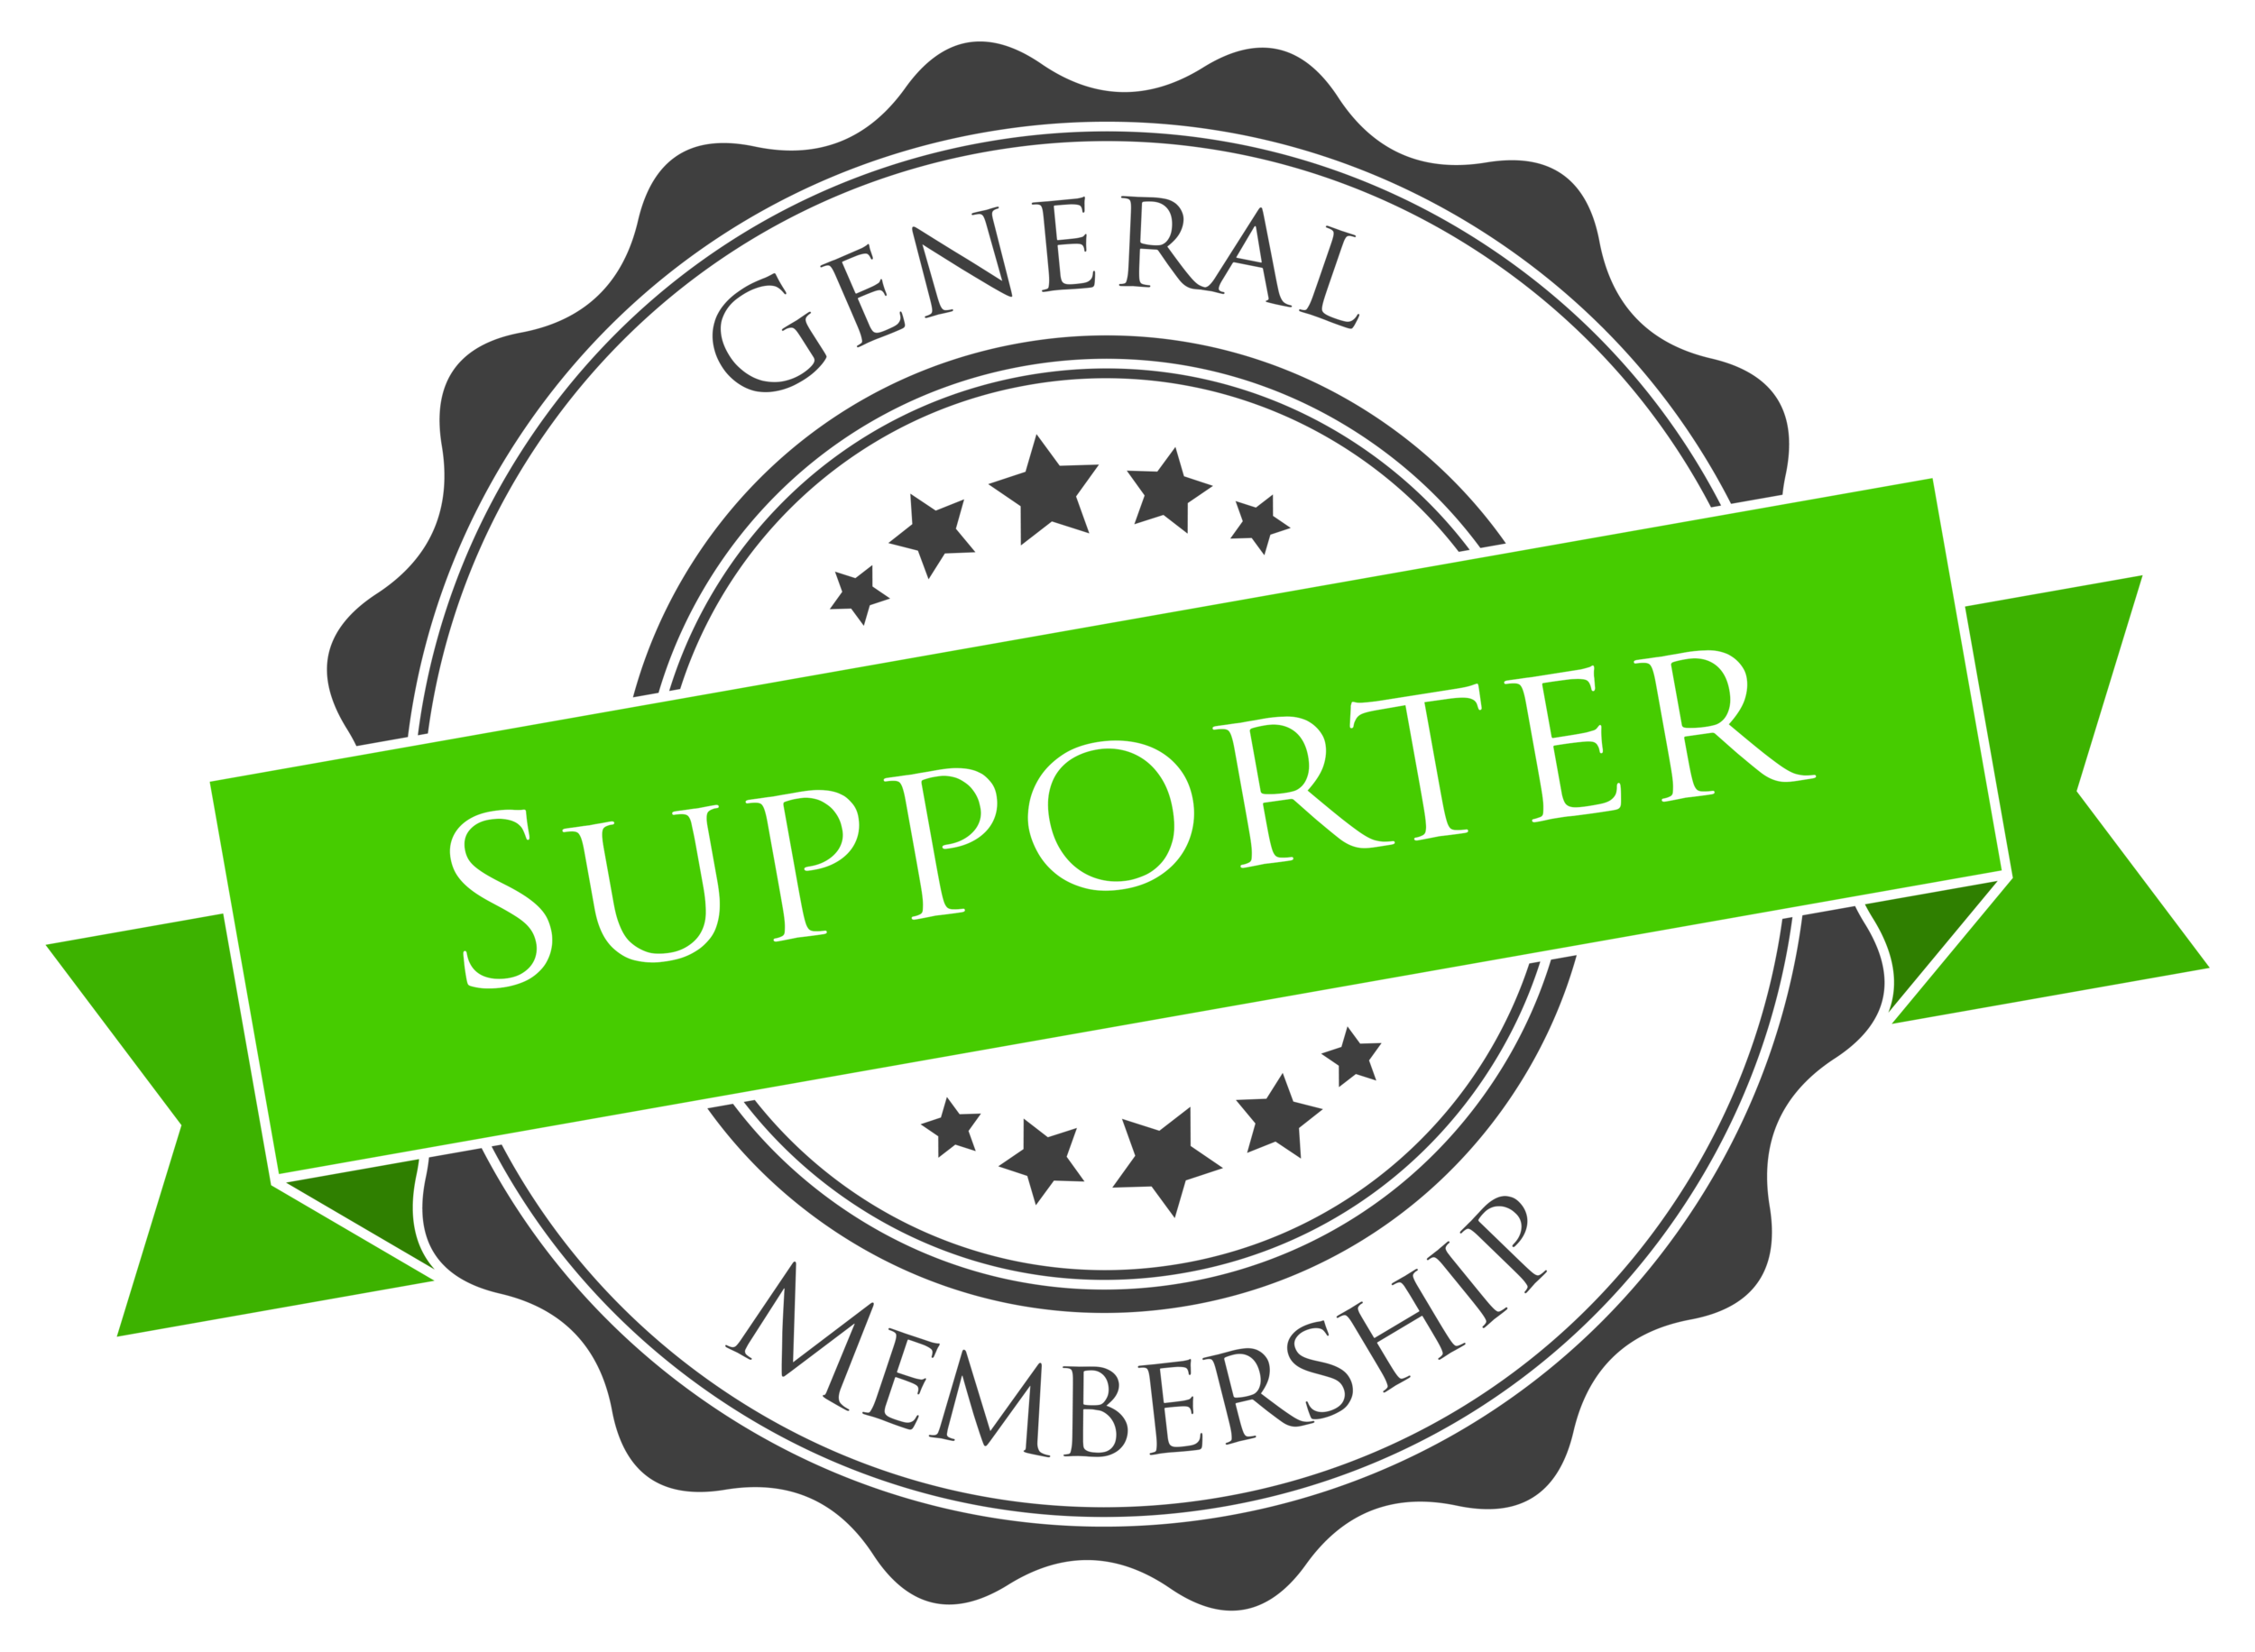 Supporter General.png